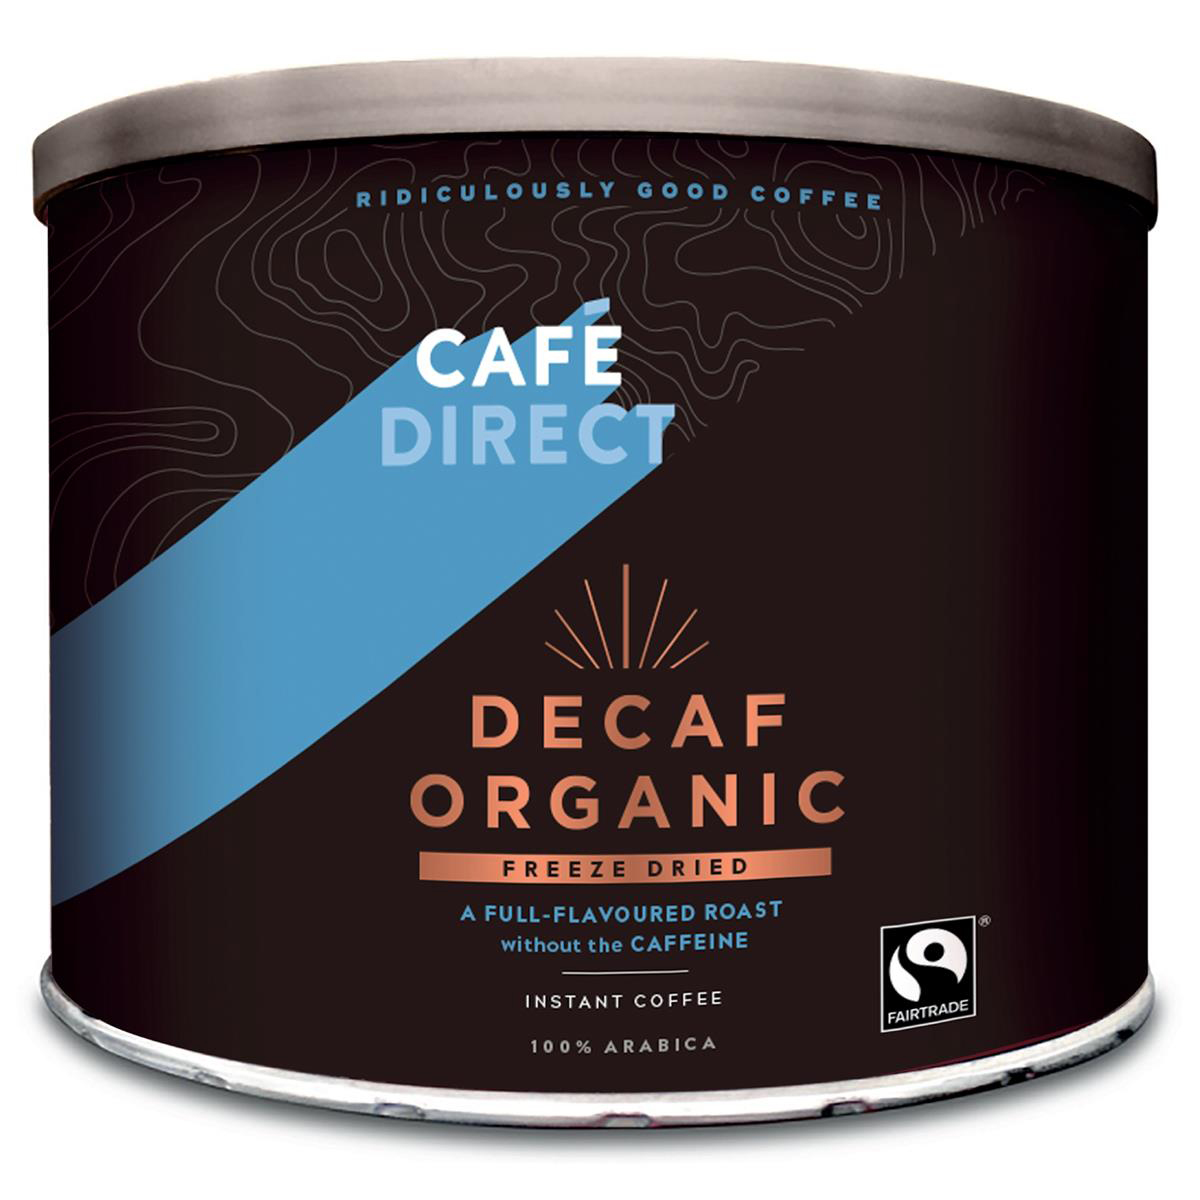 Cafe Direct Decaf Organic Freeze Dried Instant Coffee Tin 500g Ref FCF1002